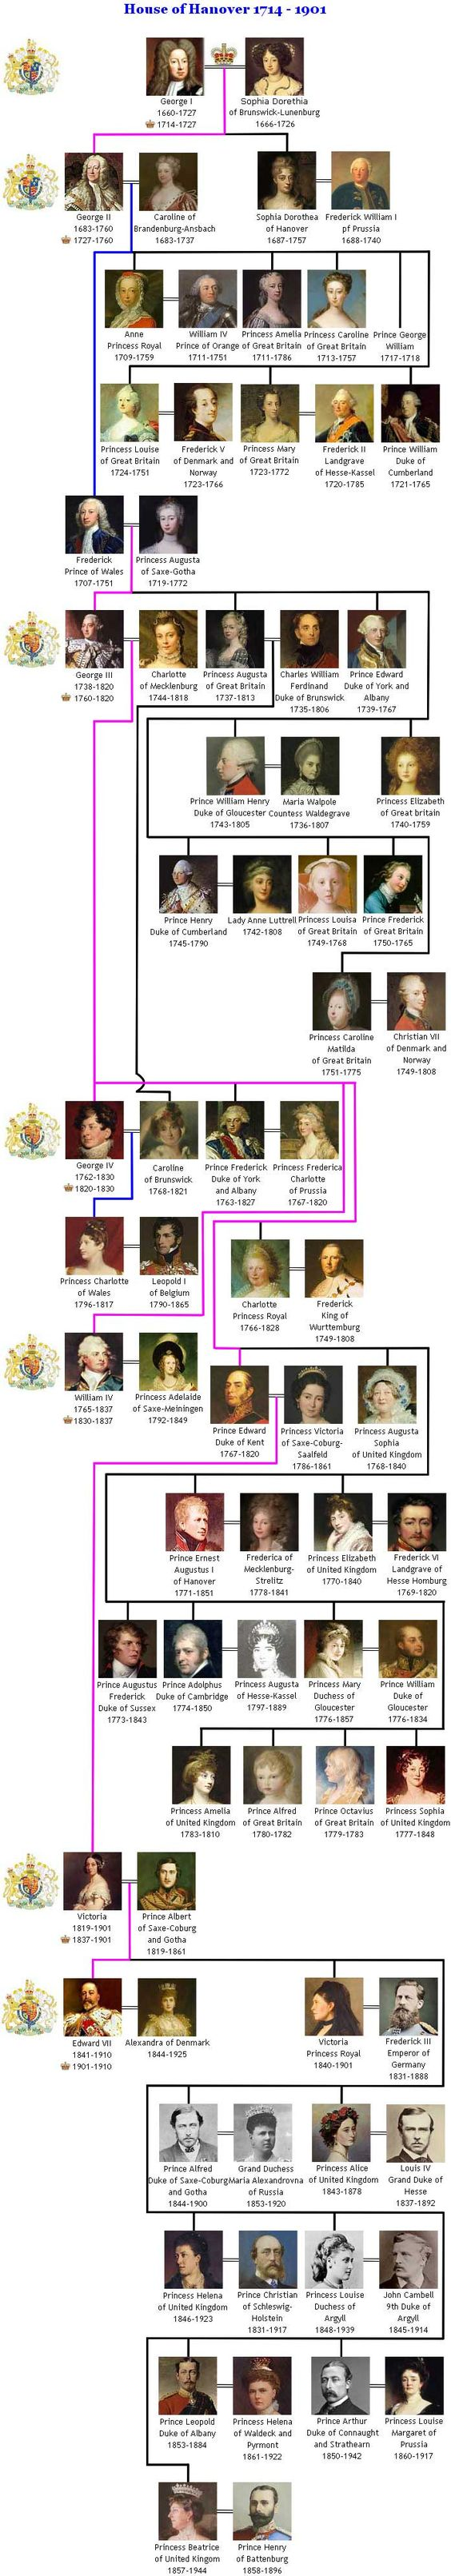 The Royal House of Hanover was the first dynasty in Great Britain. Search the family tree and read detailed descriptions of it's royal family members: